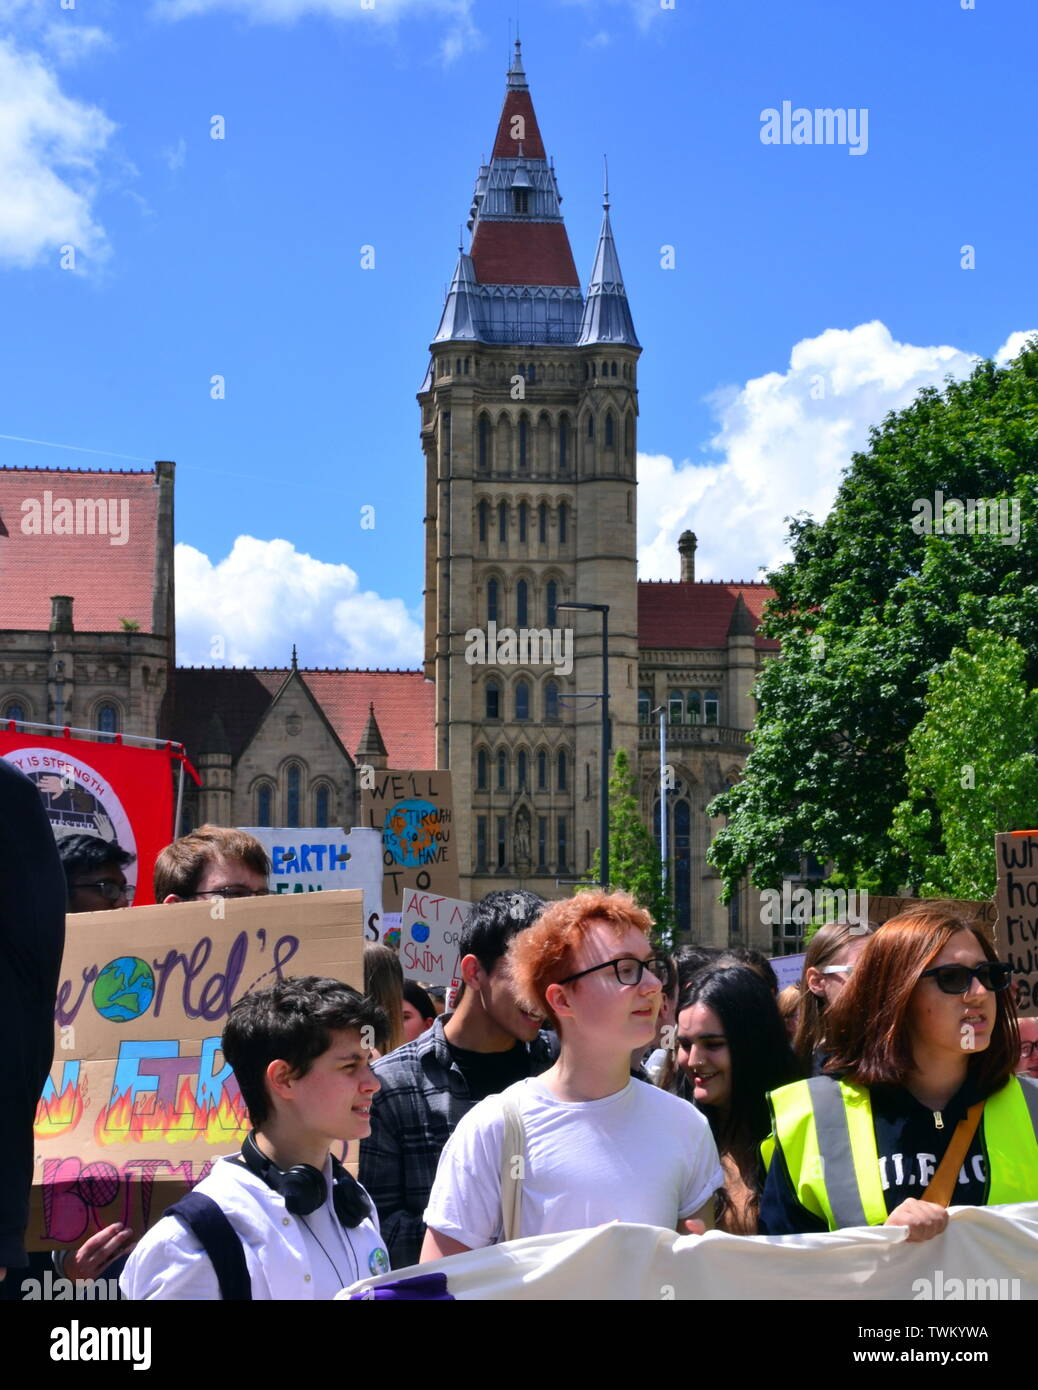 Young people lobby for action to prevent climate change at the  Manchester Youth Strike 4 Climate protest on June 21, 2019, in Manchester, uk. The group marched from St Peter's Square in the city centre to the University of Manchester. One of their demands is for the University to divest itself of investments in fossil fuels. The building behind the protesters is the University's Whitworth Hall. - Stock Image